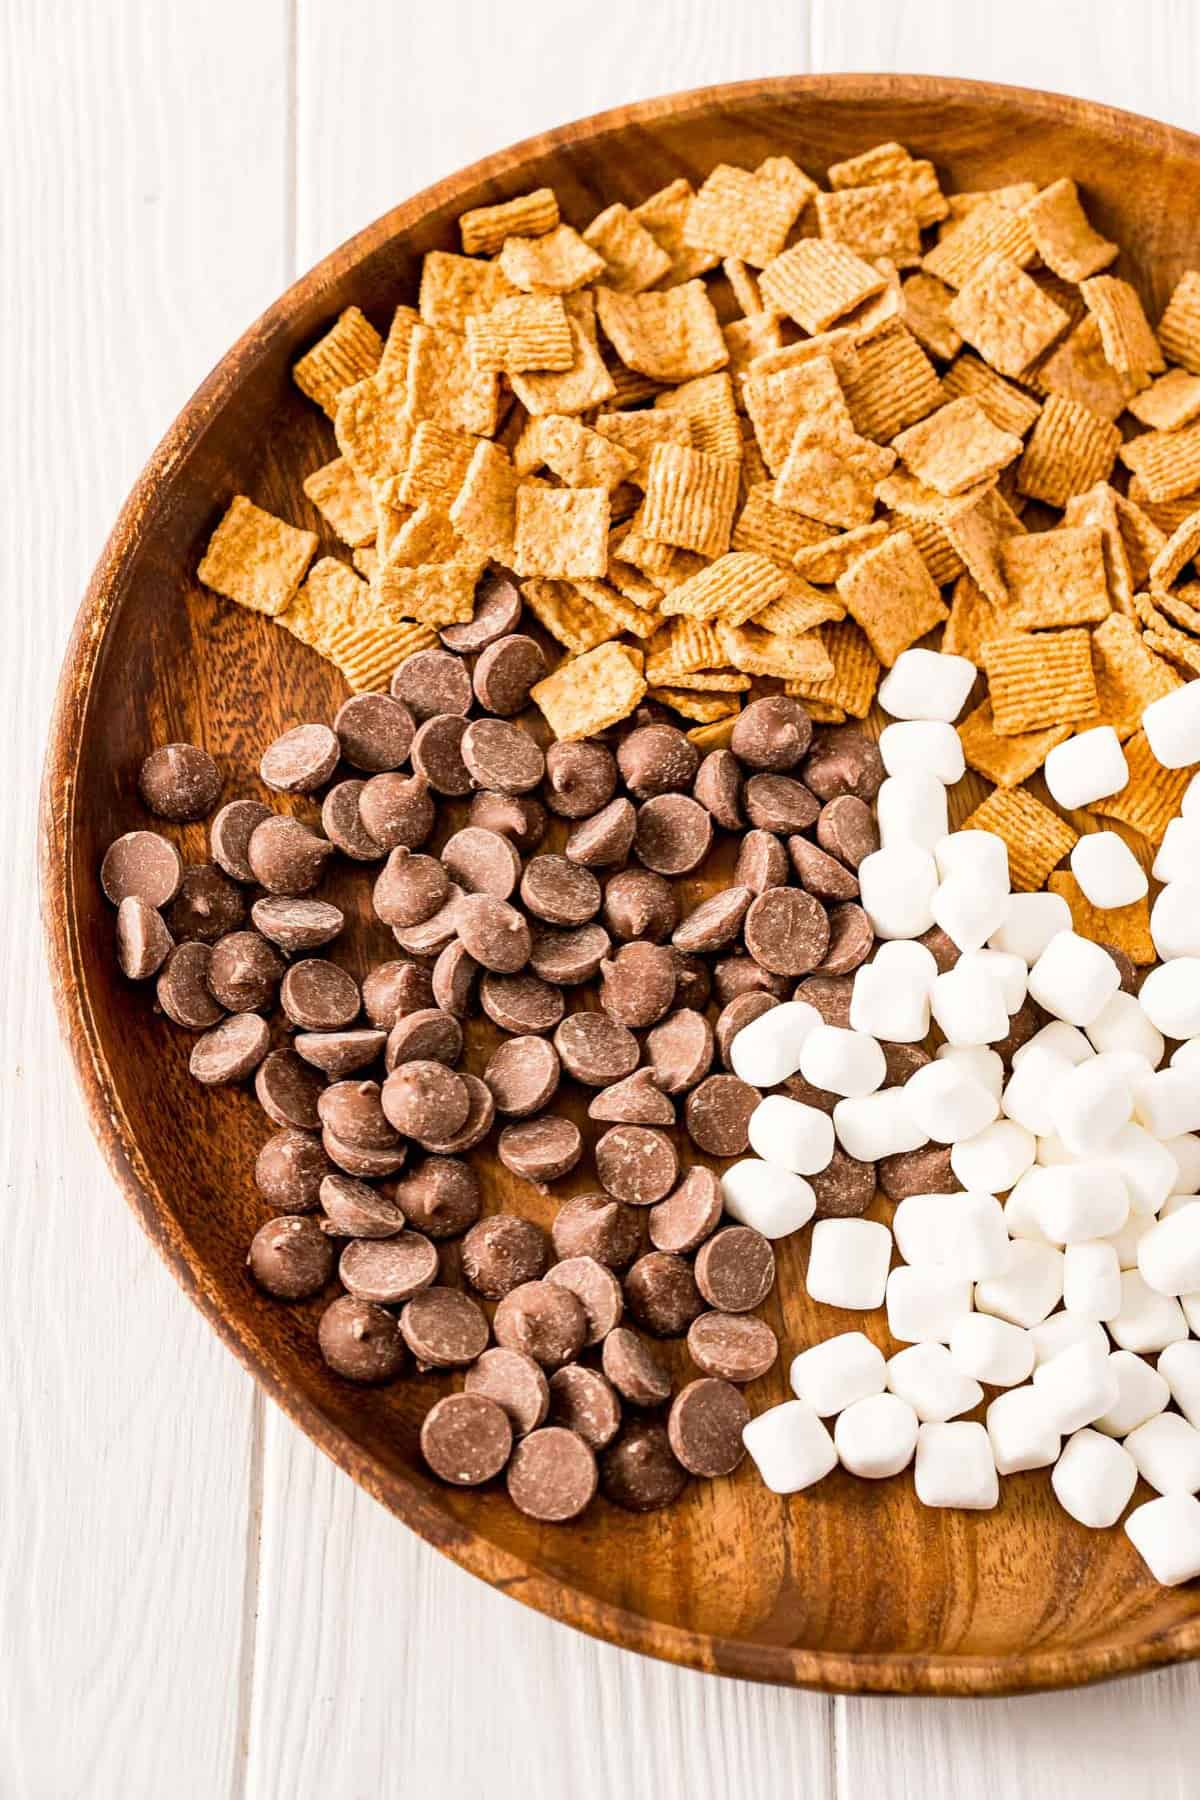 Golden graham cereal, chocolate chips, and marshmallows on large wooden tray.